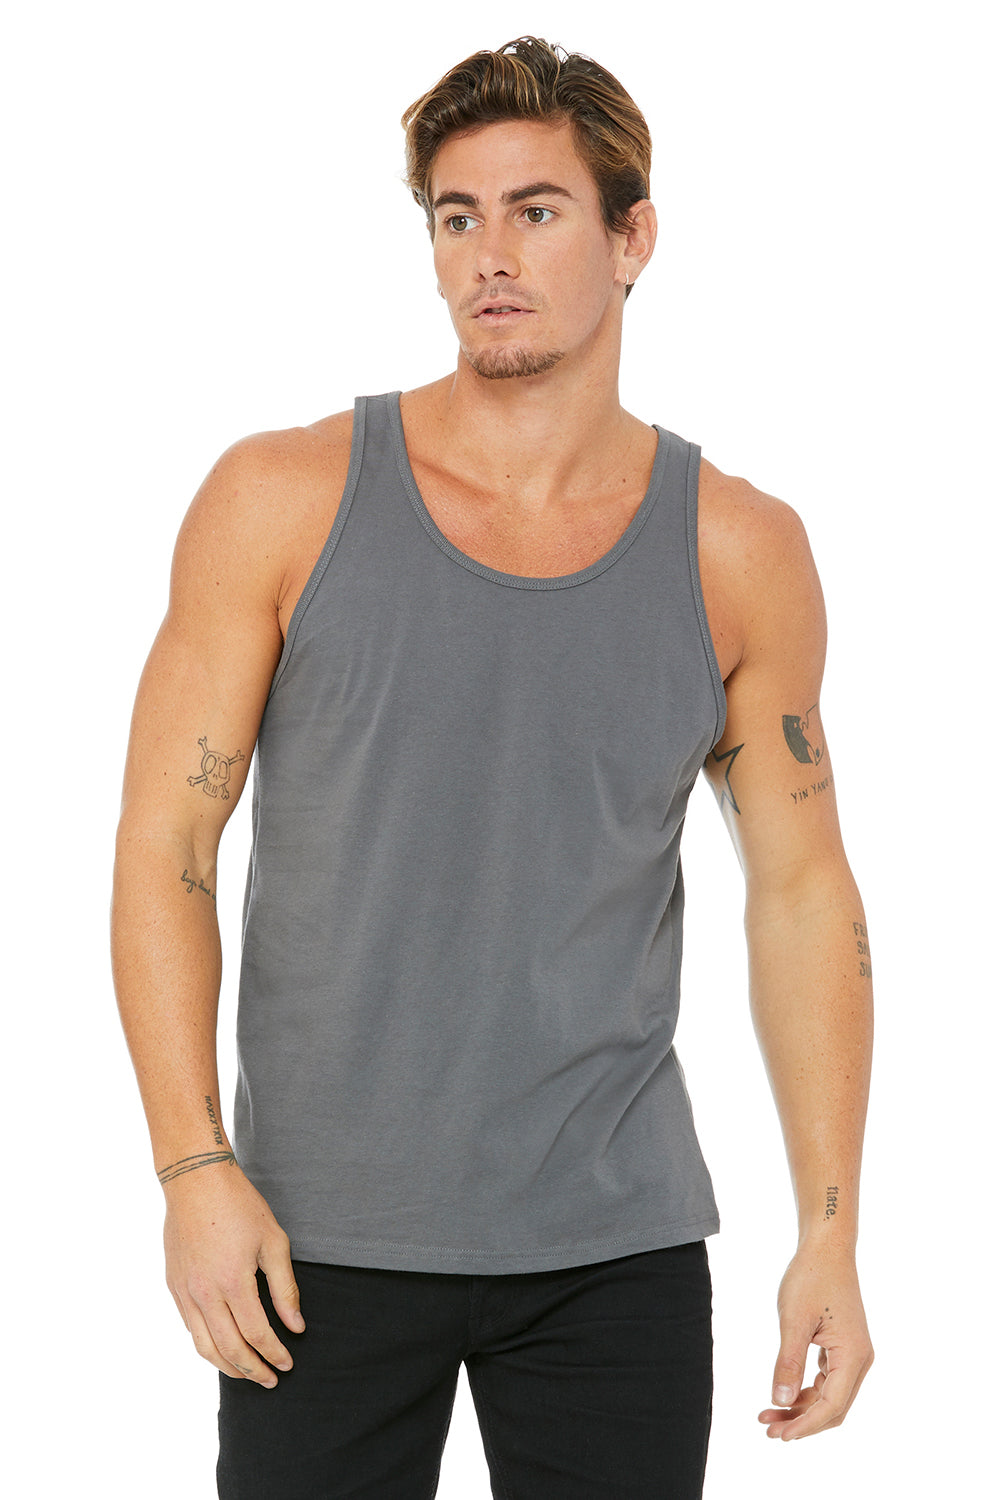 Bella + Canvas 3480 Mens Jersey Tank Top Asphalt Grey Front